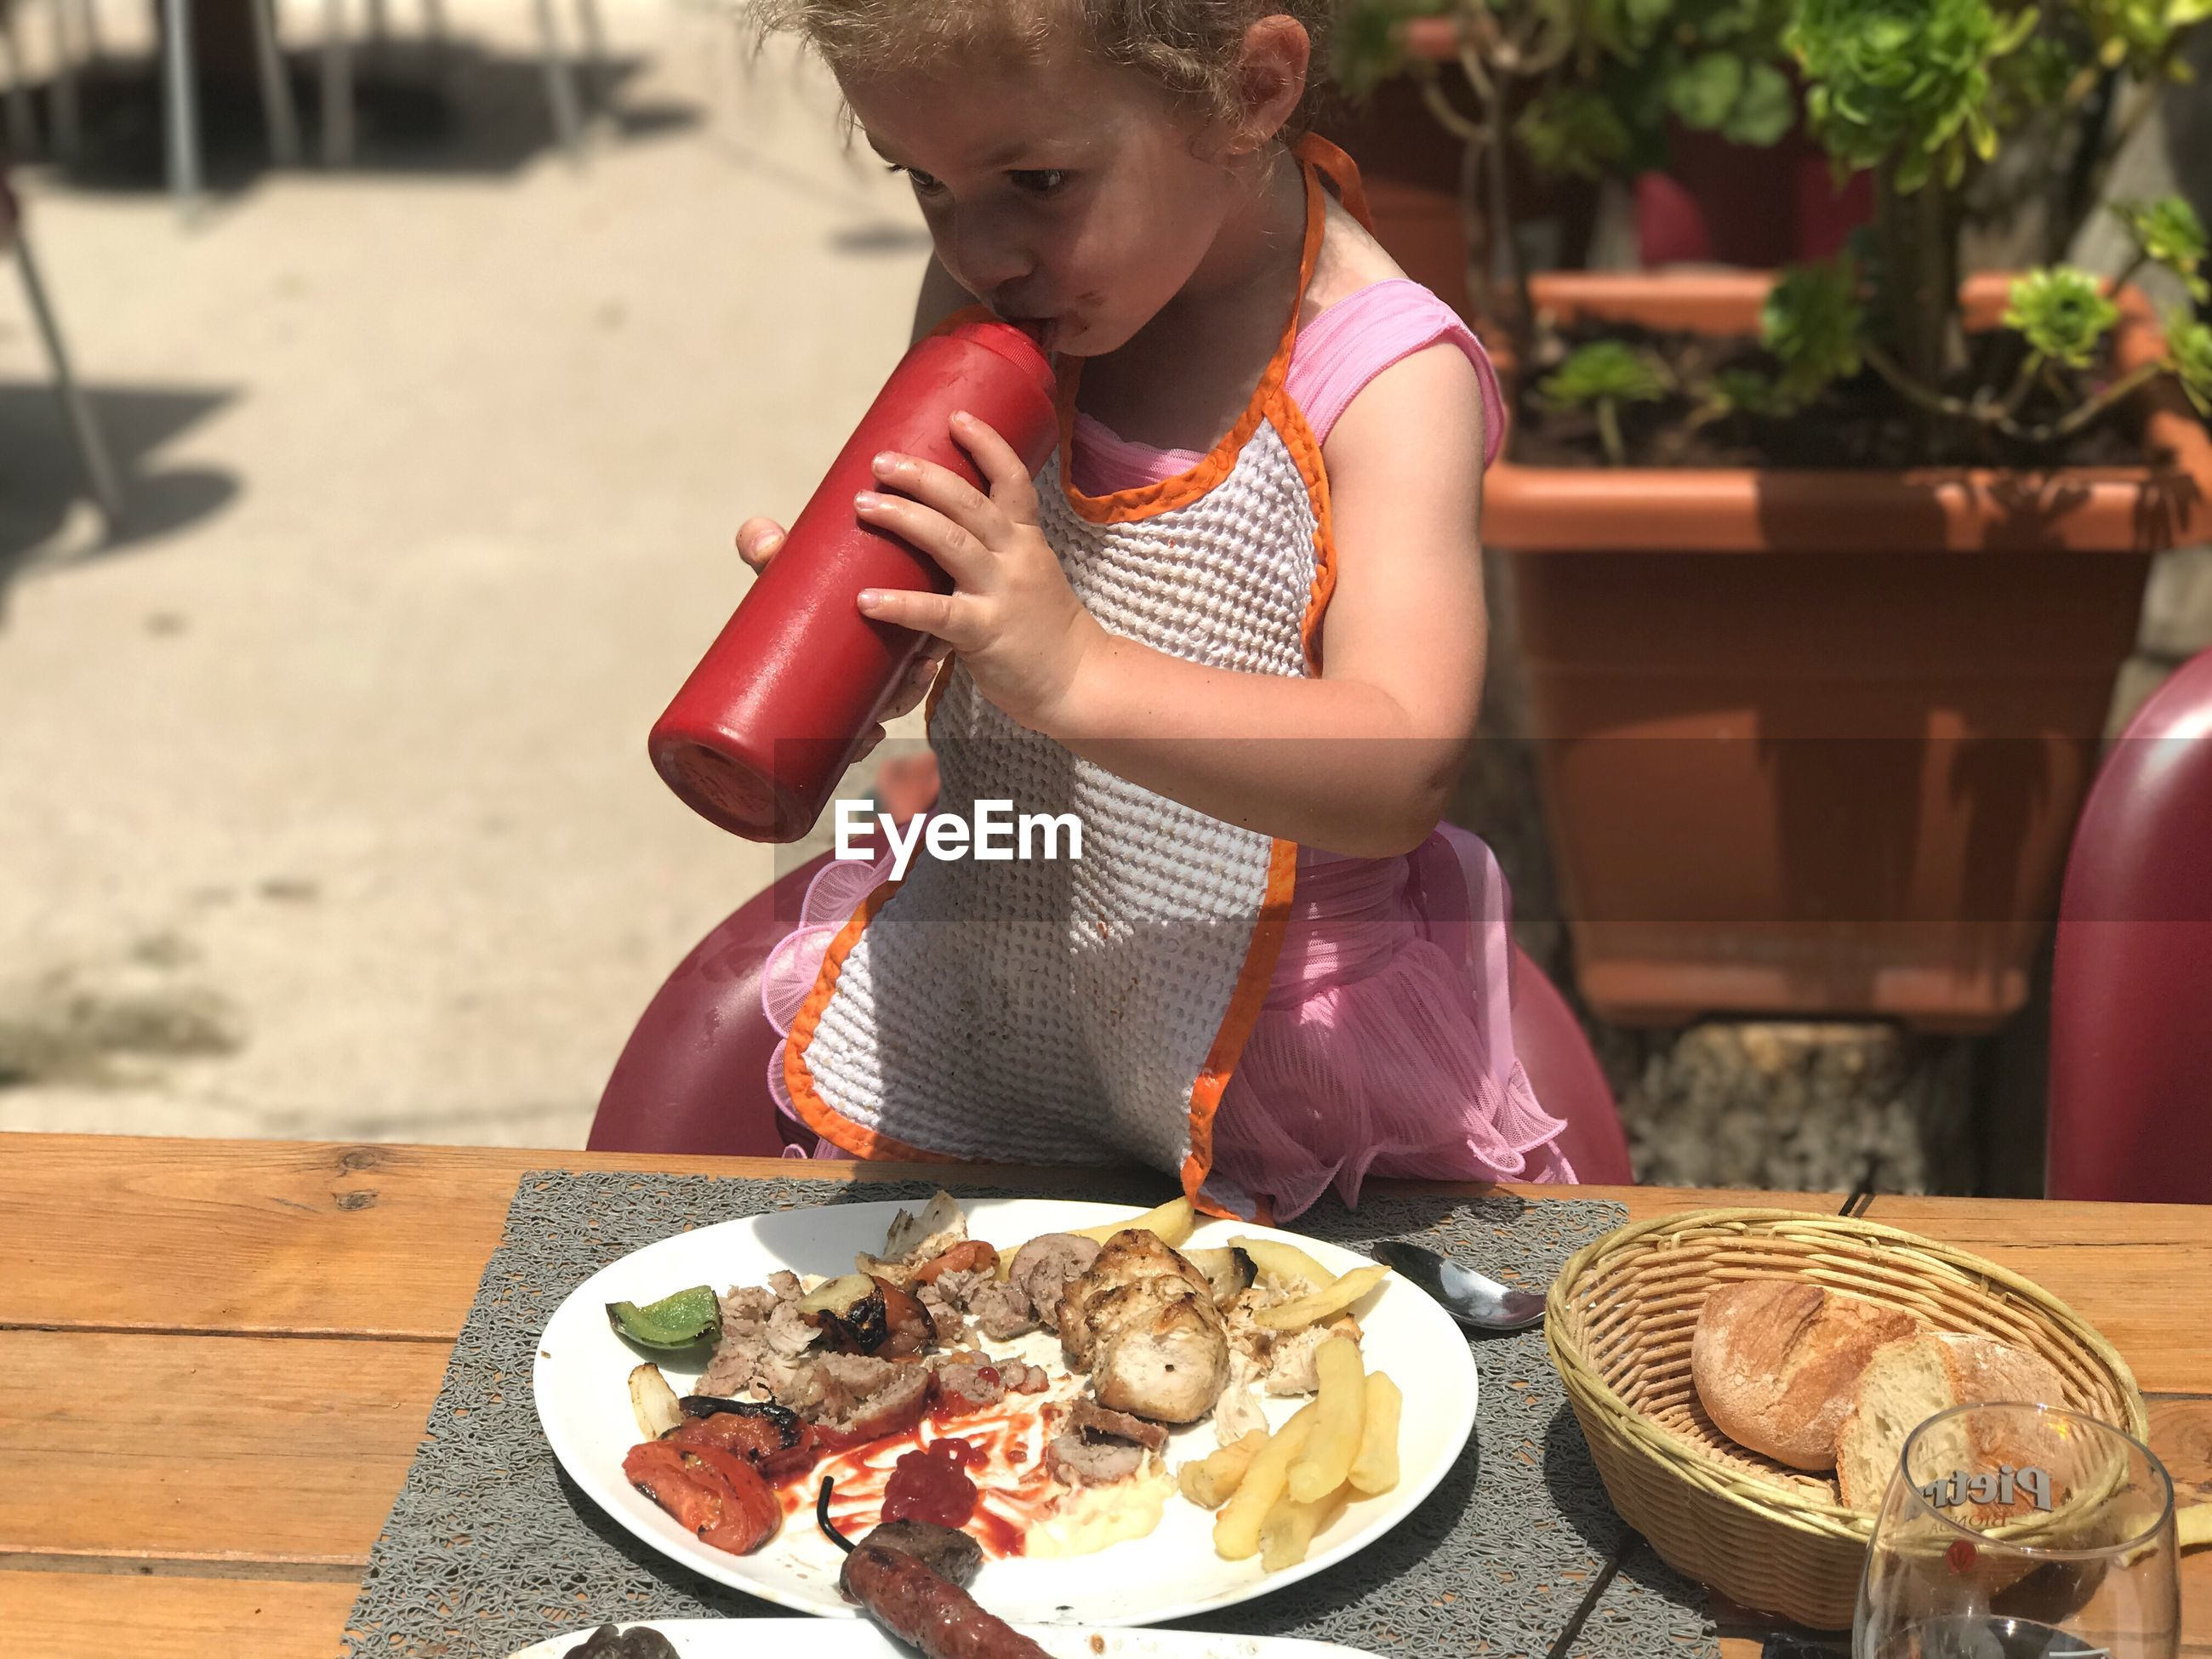 Little girl drinking ketchup from bottle at table